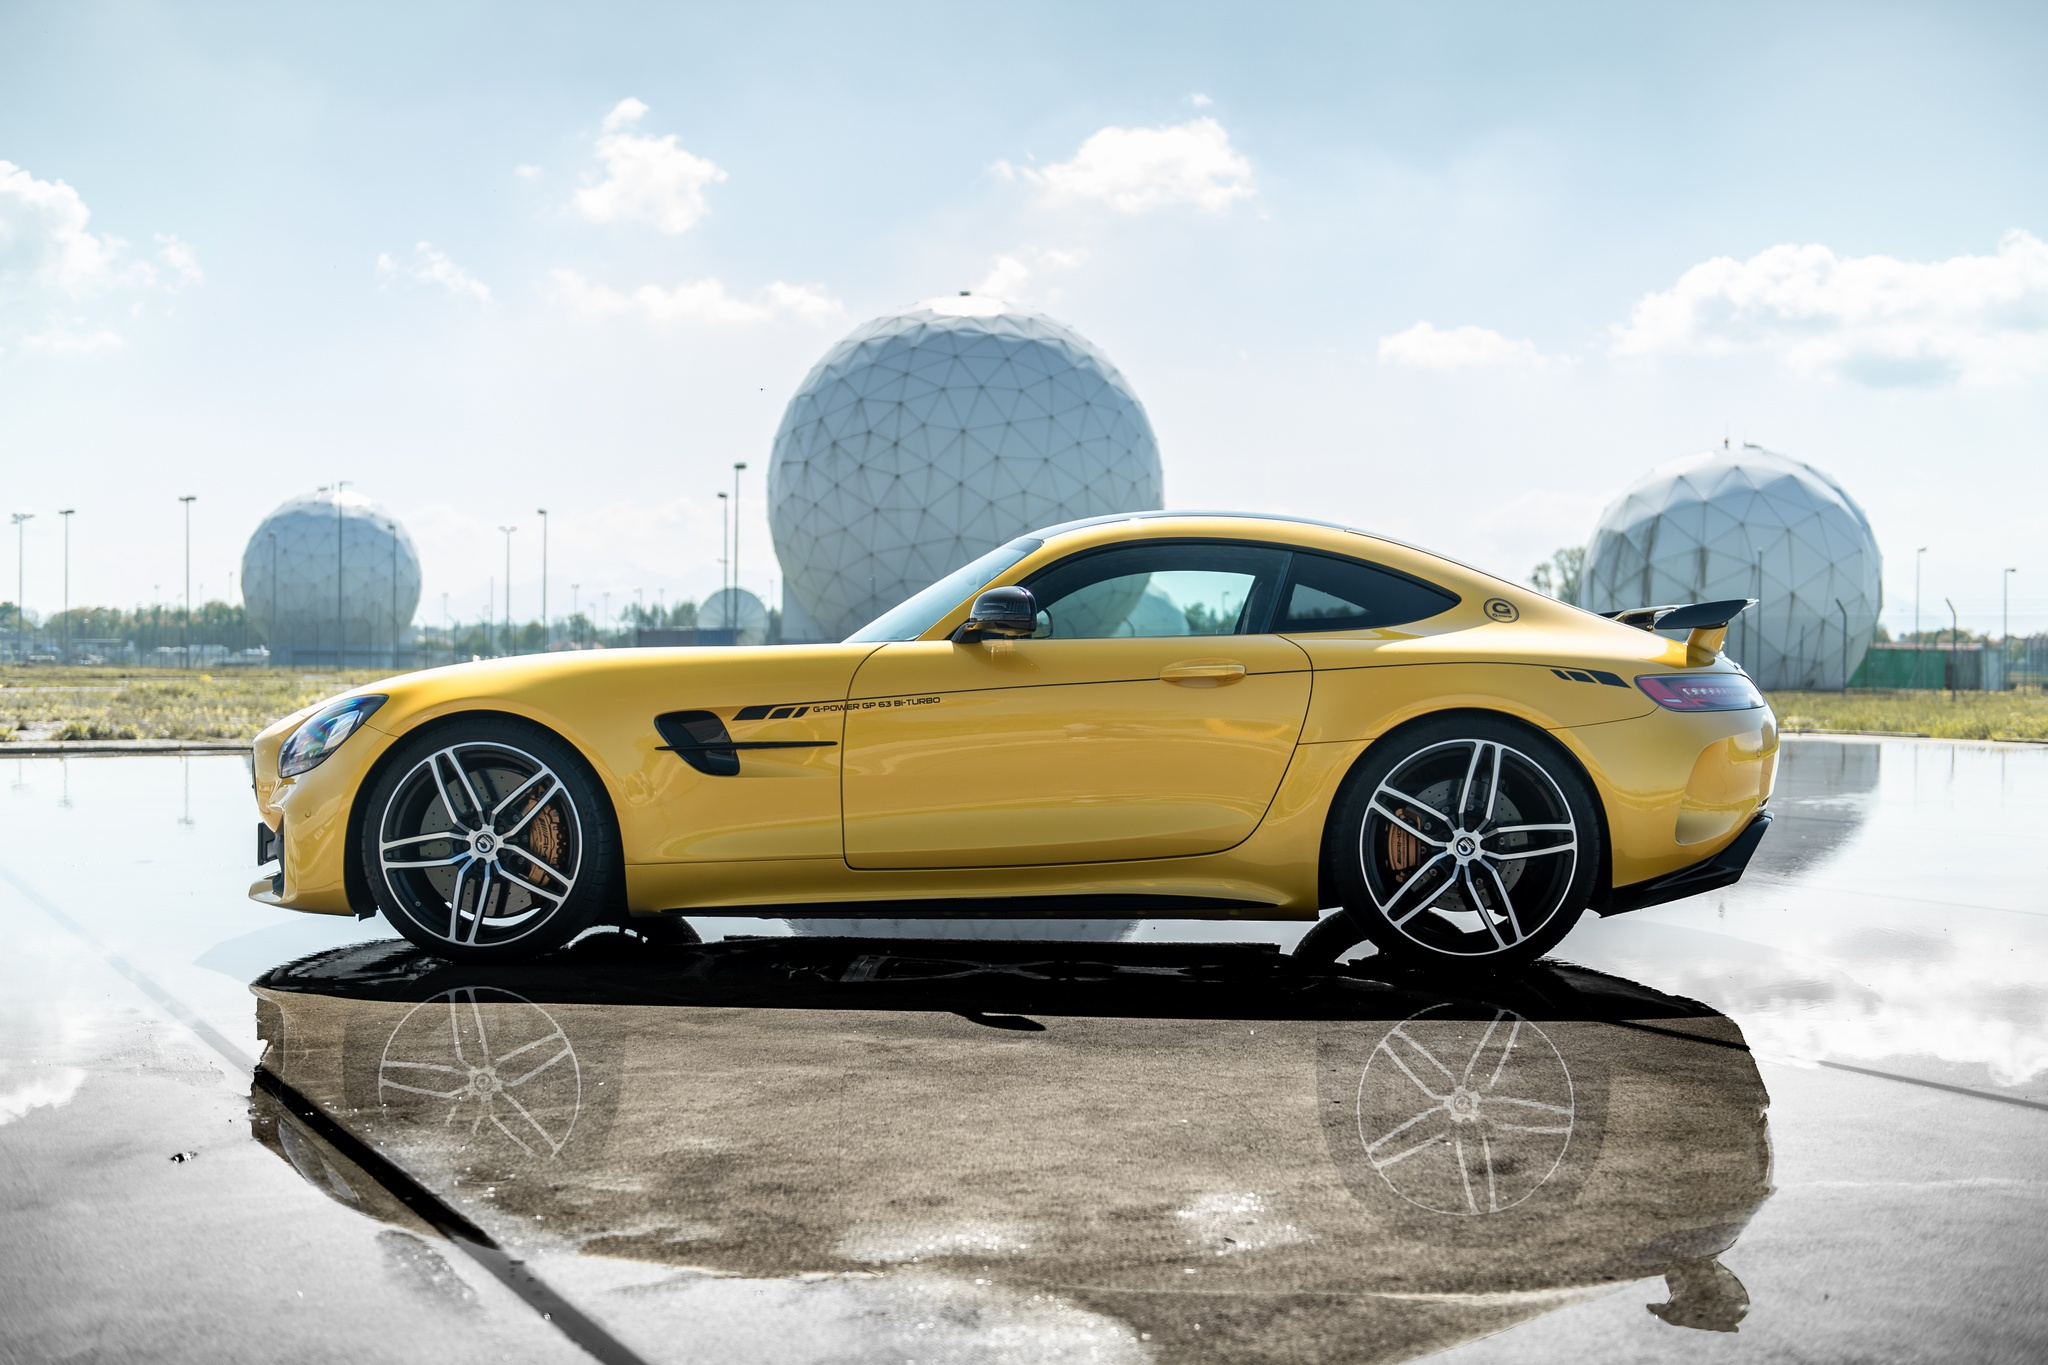 Mercedes-AMG GT R G-Power